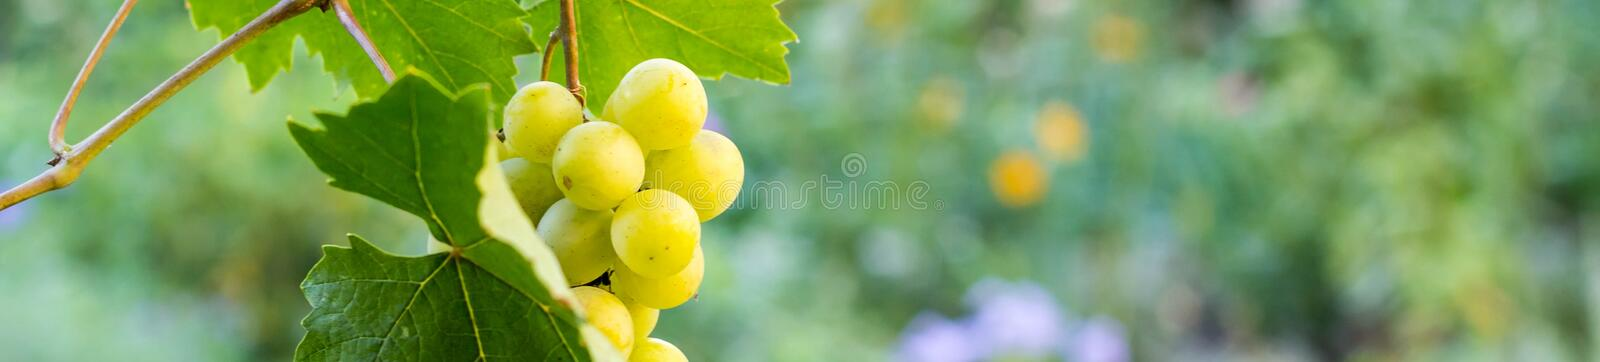 banner of Bunches of white grapes hanging in vineyard against at green and yellow background during sunset royalty free stock photography